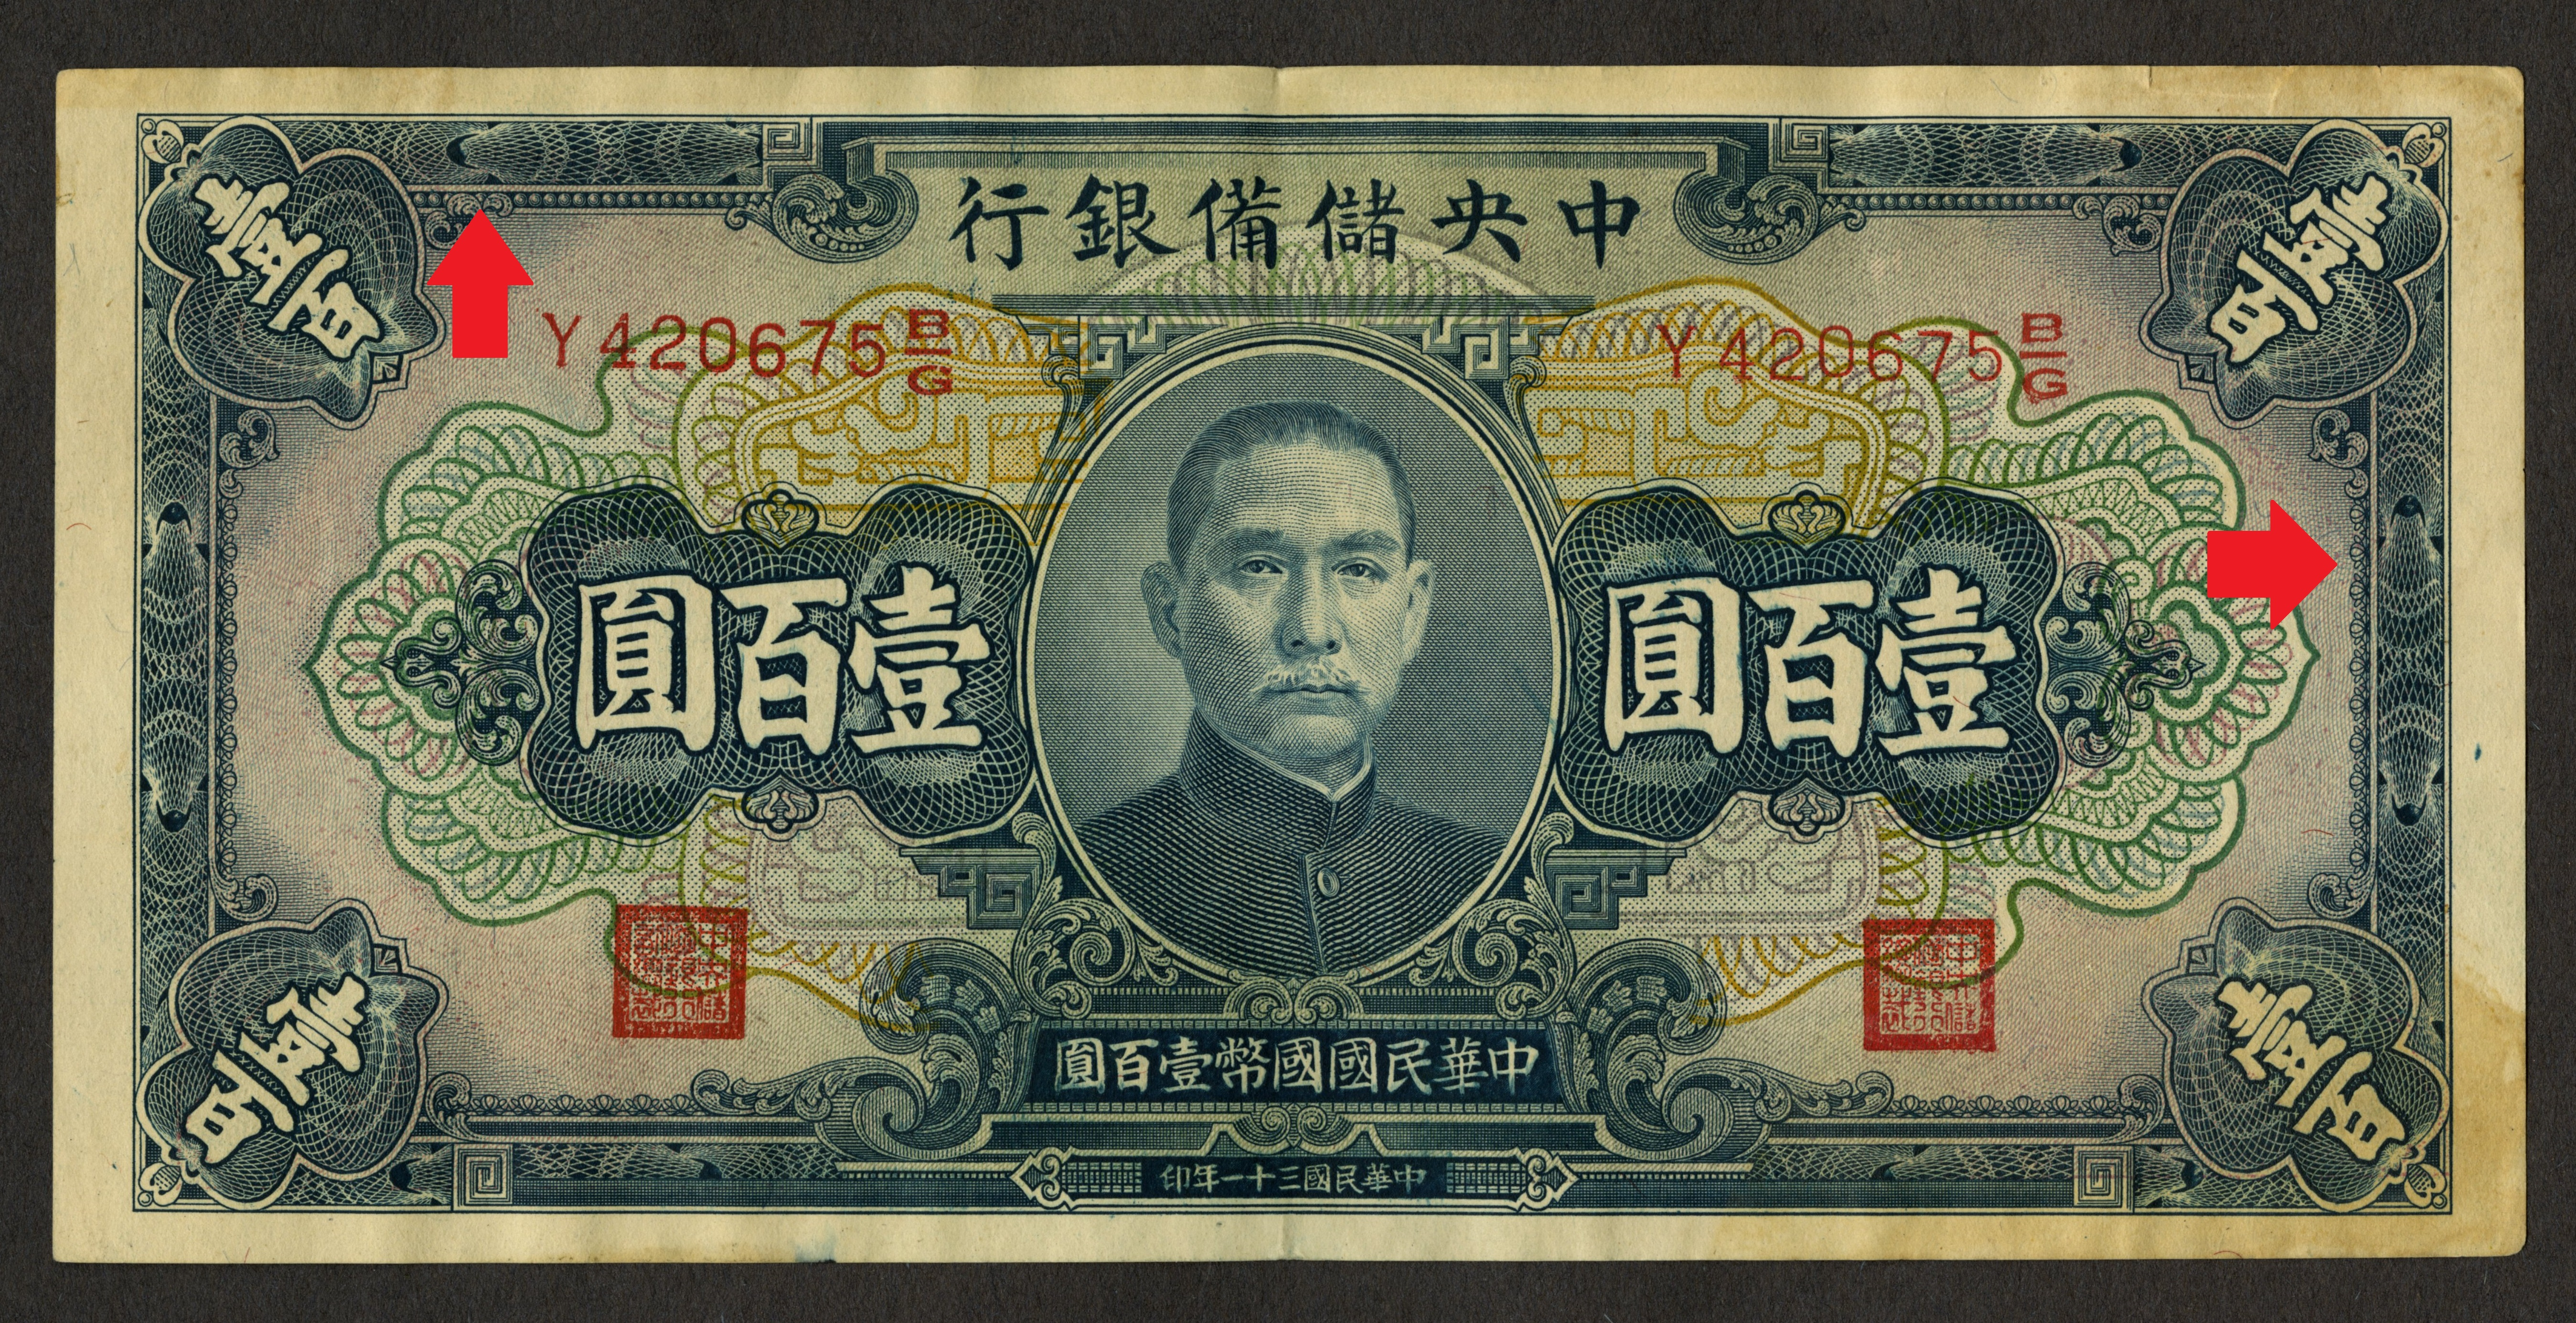 china currency war 2018-7-29 the ishares china large-cap etf(nyse:fxi) will no doubt be affected by a newly launched currency war.